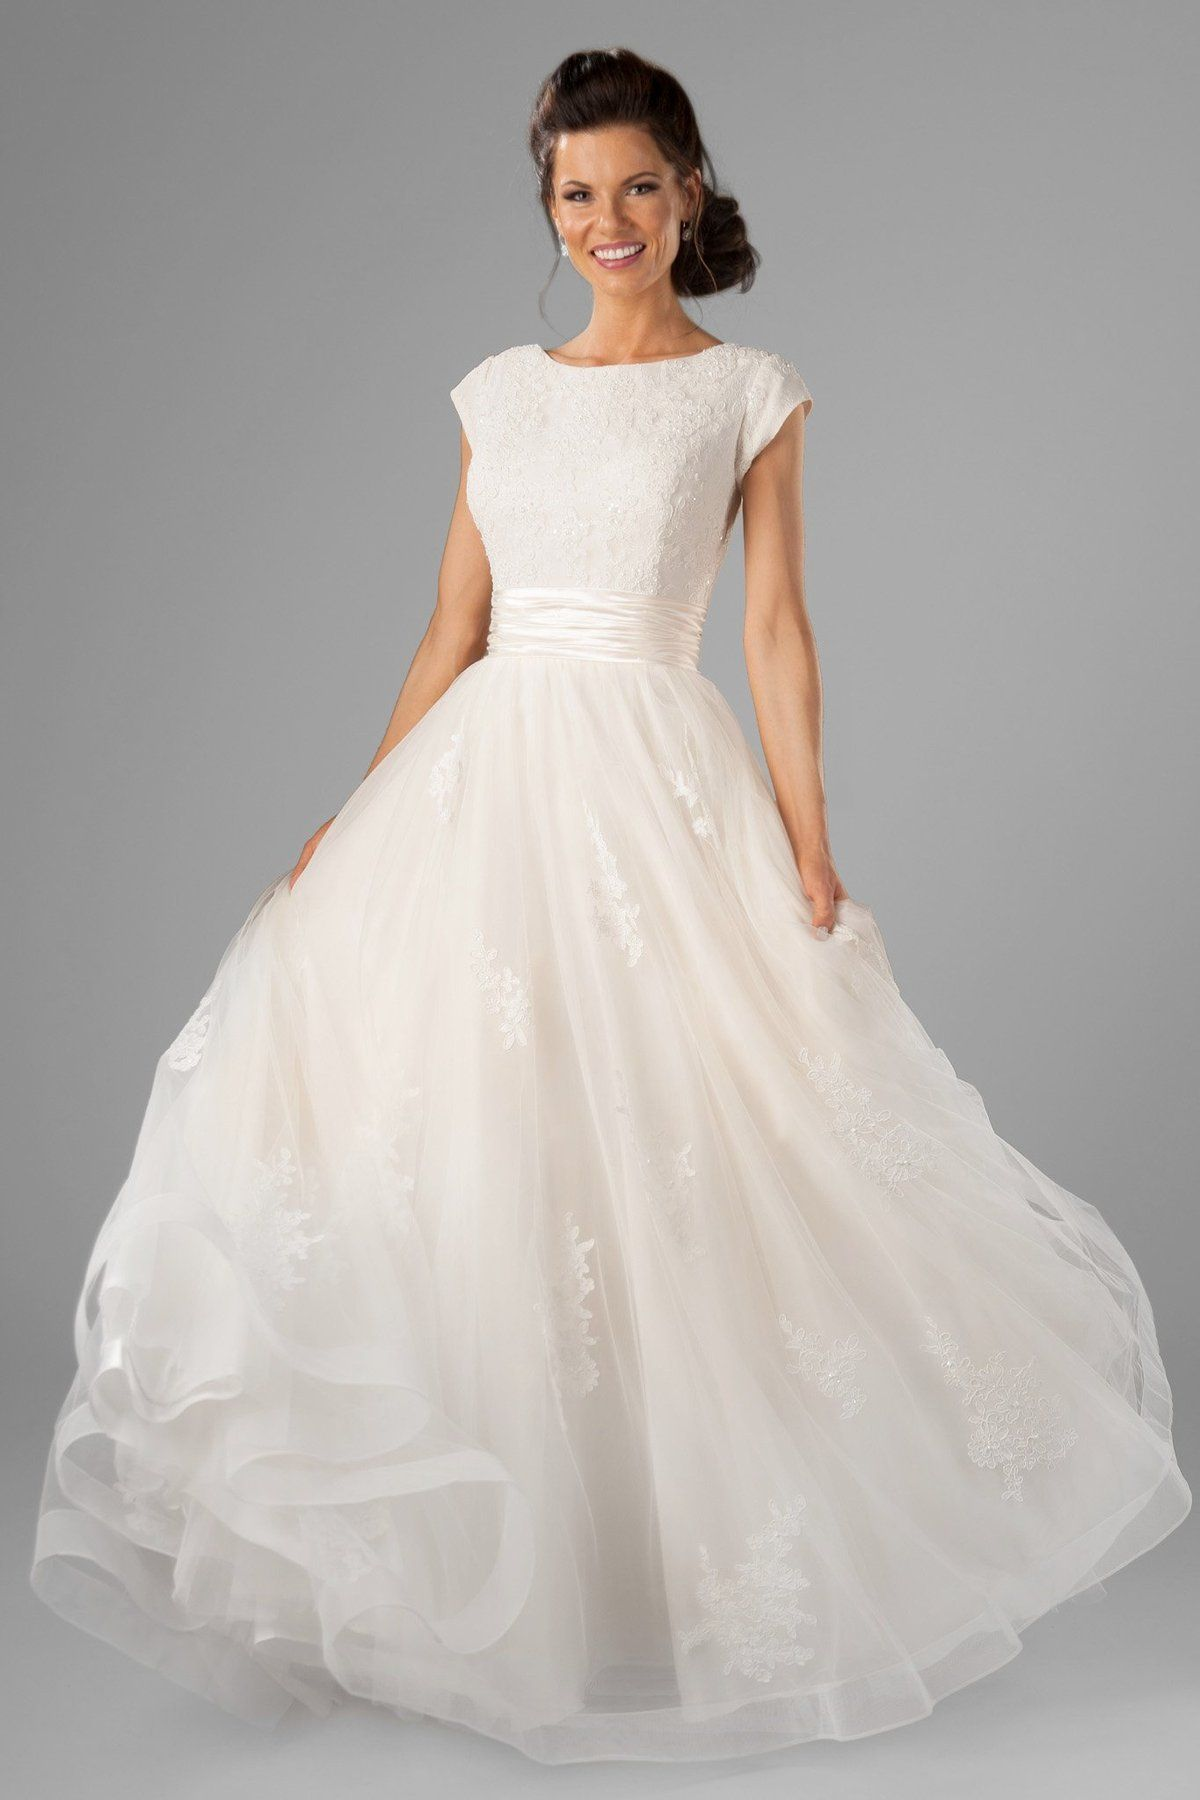 Stunning light lace wedding gown, style Lorelai, is part